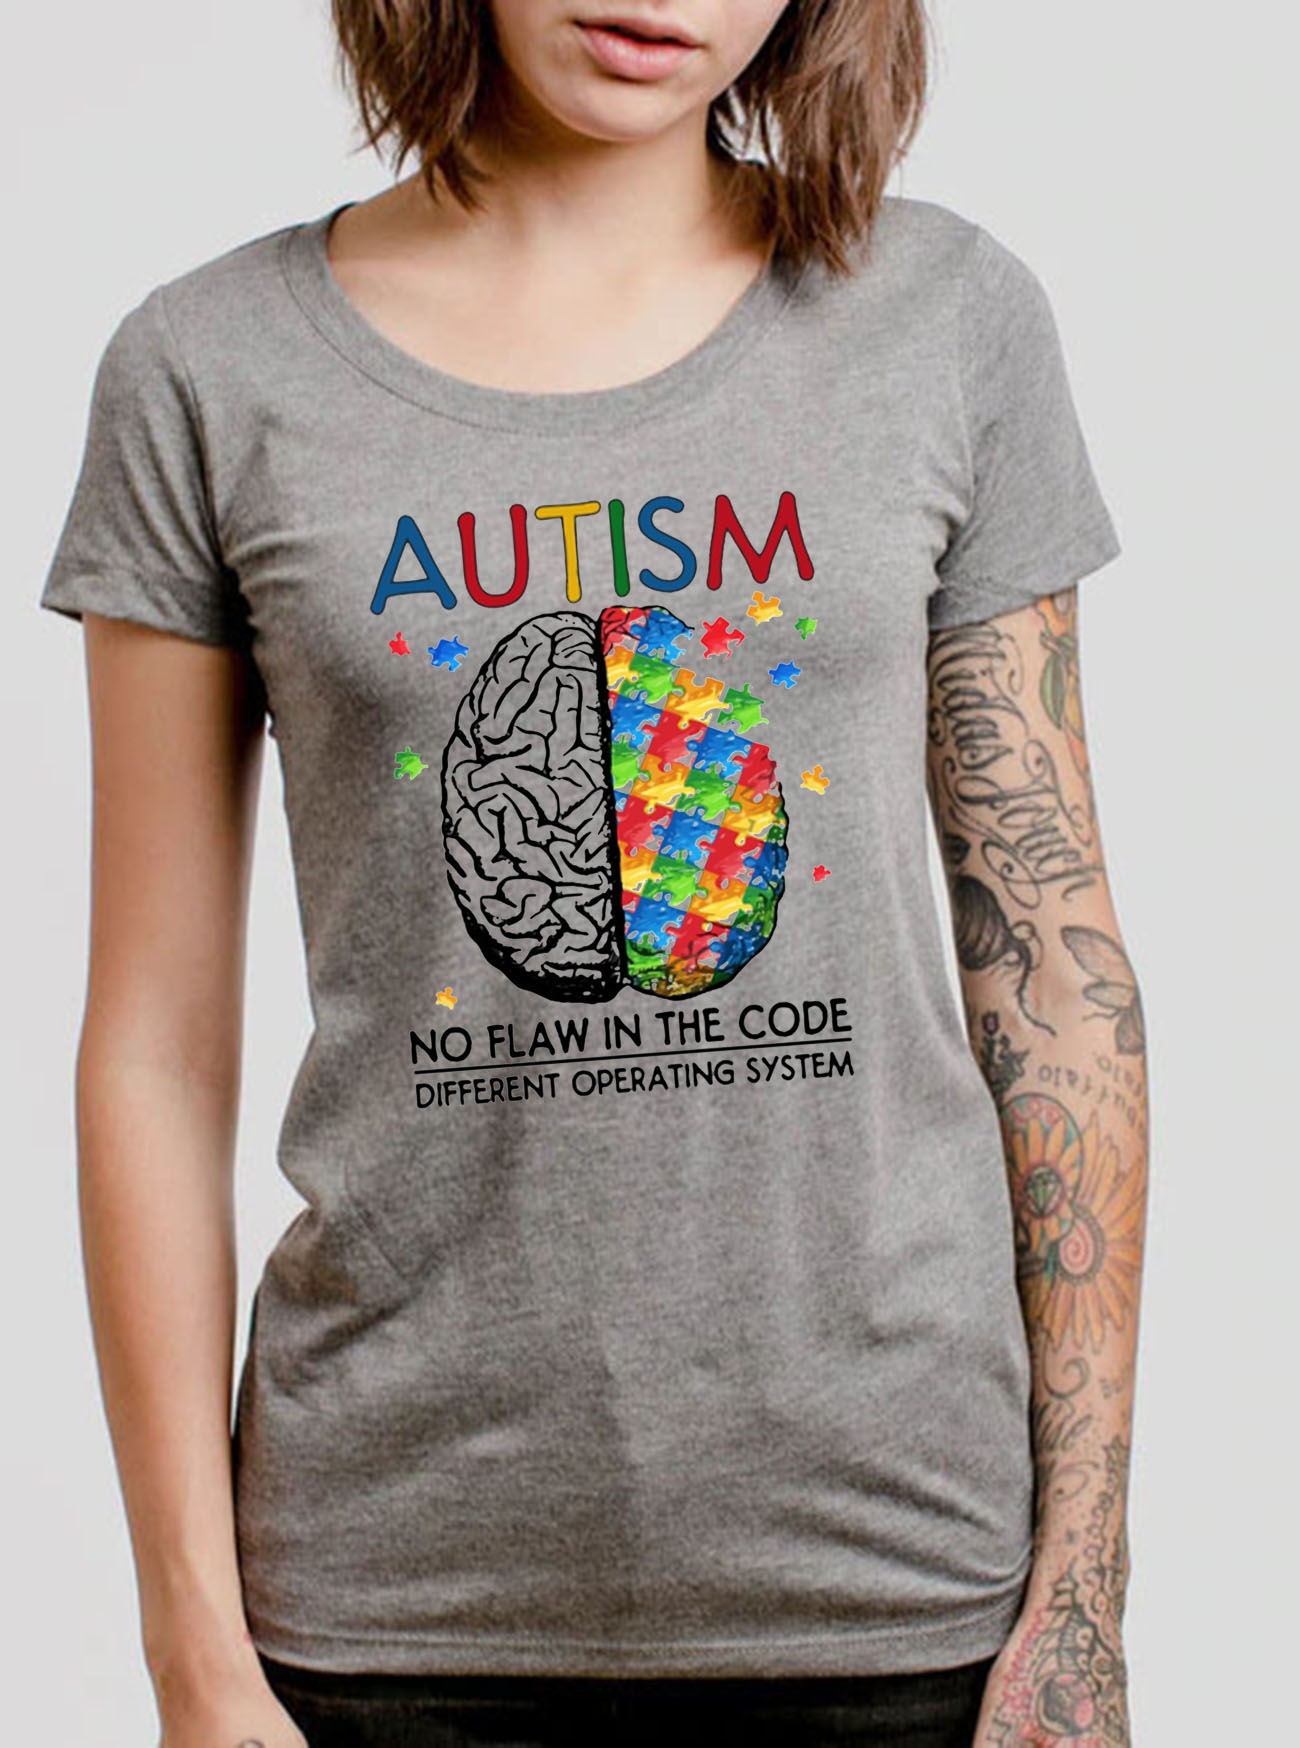 Autism No Flaw In The Code Different Operating System Tee Shirts